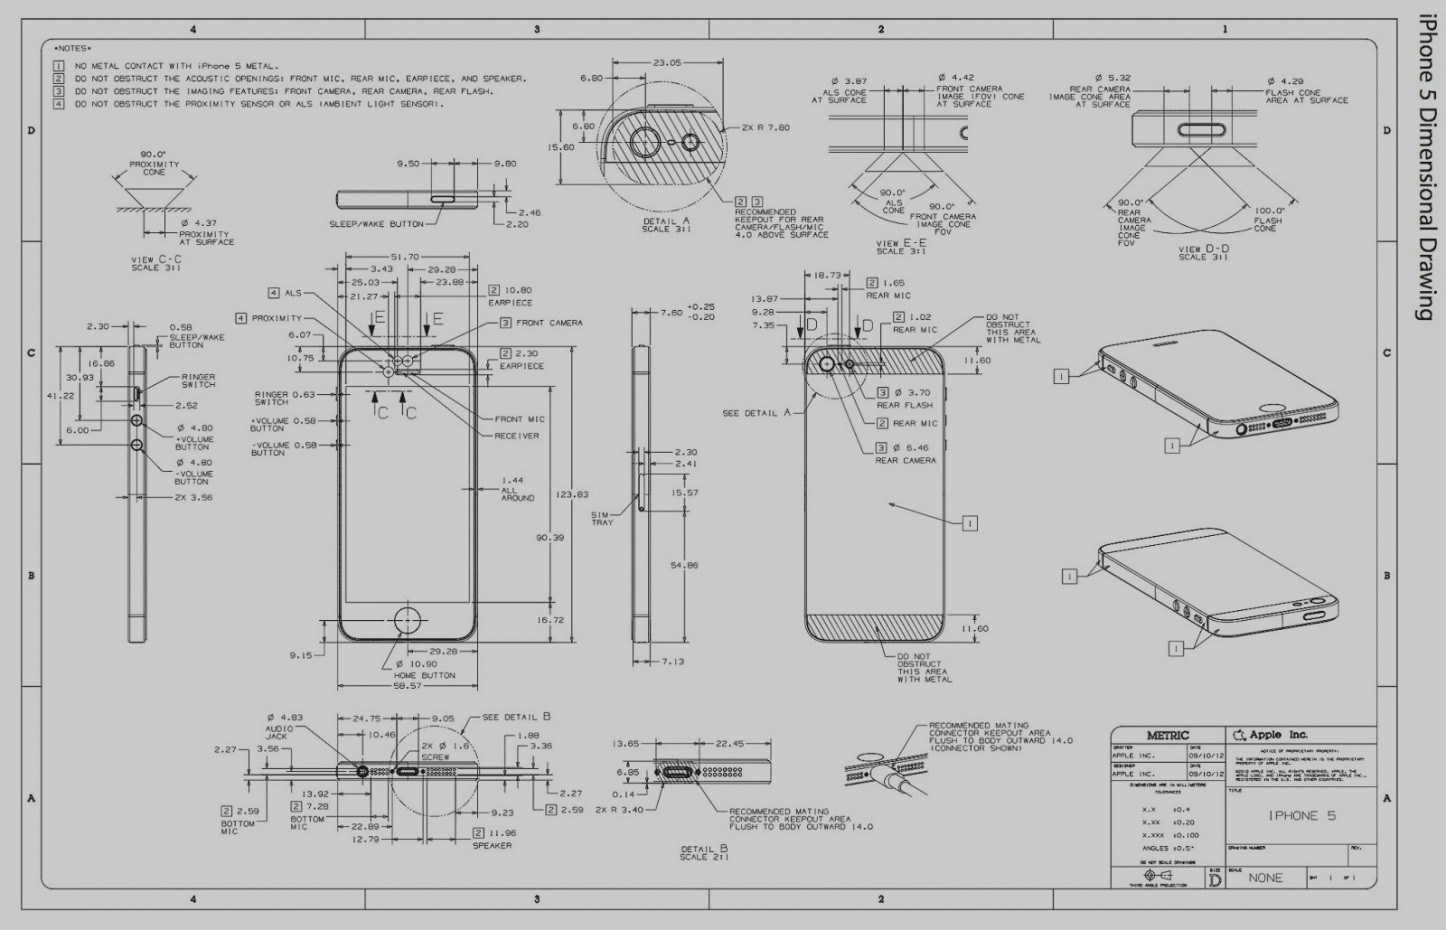 Apple Iphone 6 Schematic Diagram Electrical Wiring Diagrams 5 Circuit Pictures Image 4s 25 Great Schematics Bullettrain